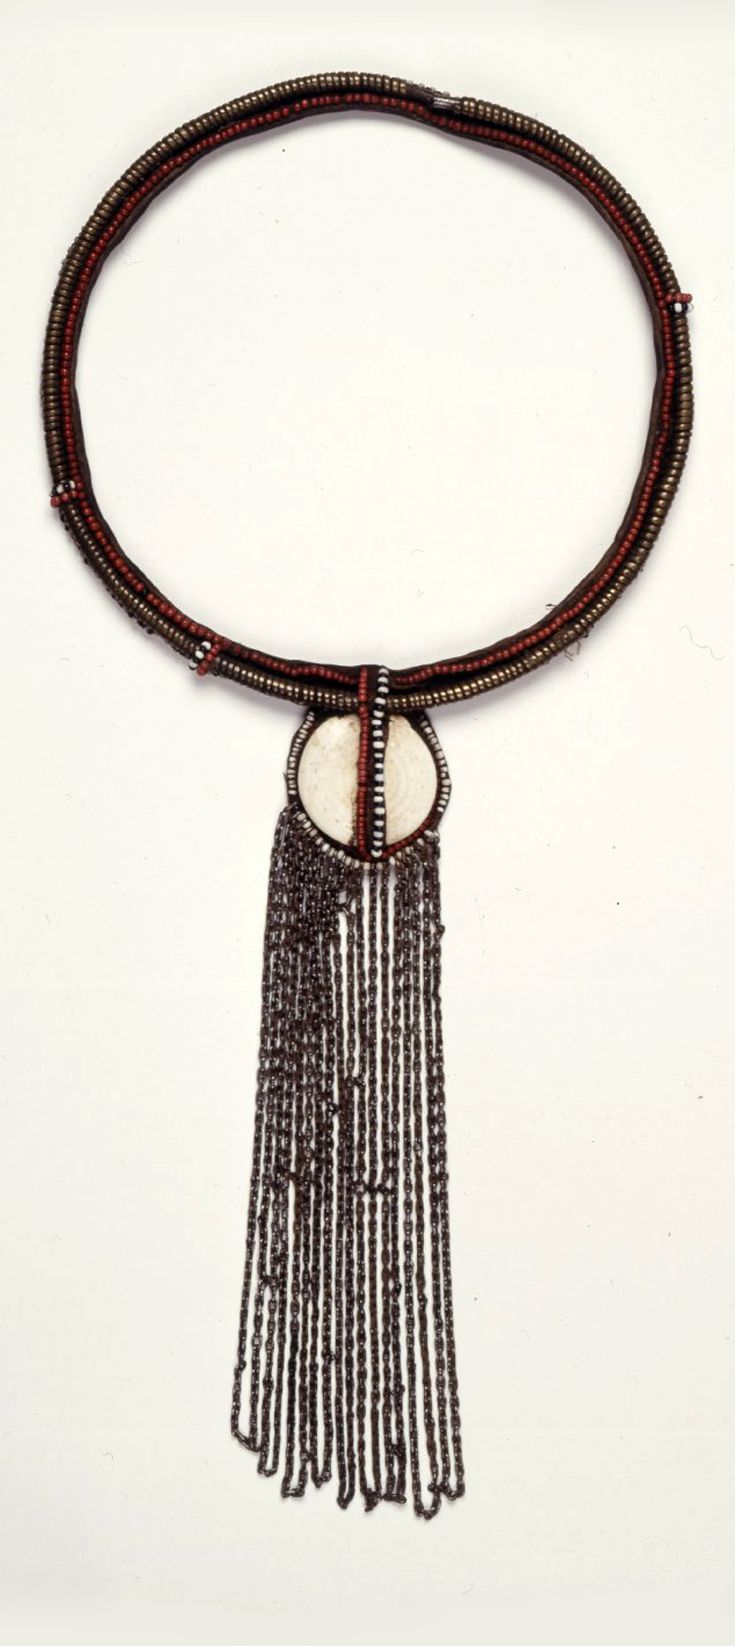 Kenya / Tanzania | Necklace; leather, glass beads, conus shell, iron and brass wire, with chain | Possibly from the Masai people from the Kilimanjaro region or Kenya | ca. 1904 or earlier